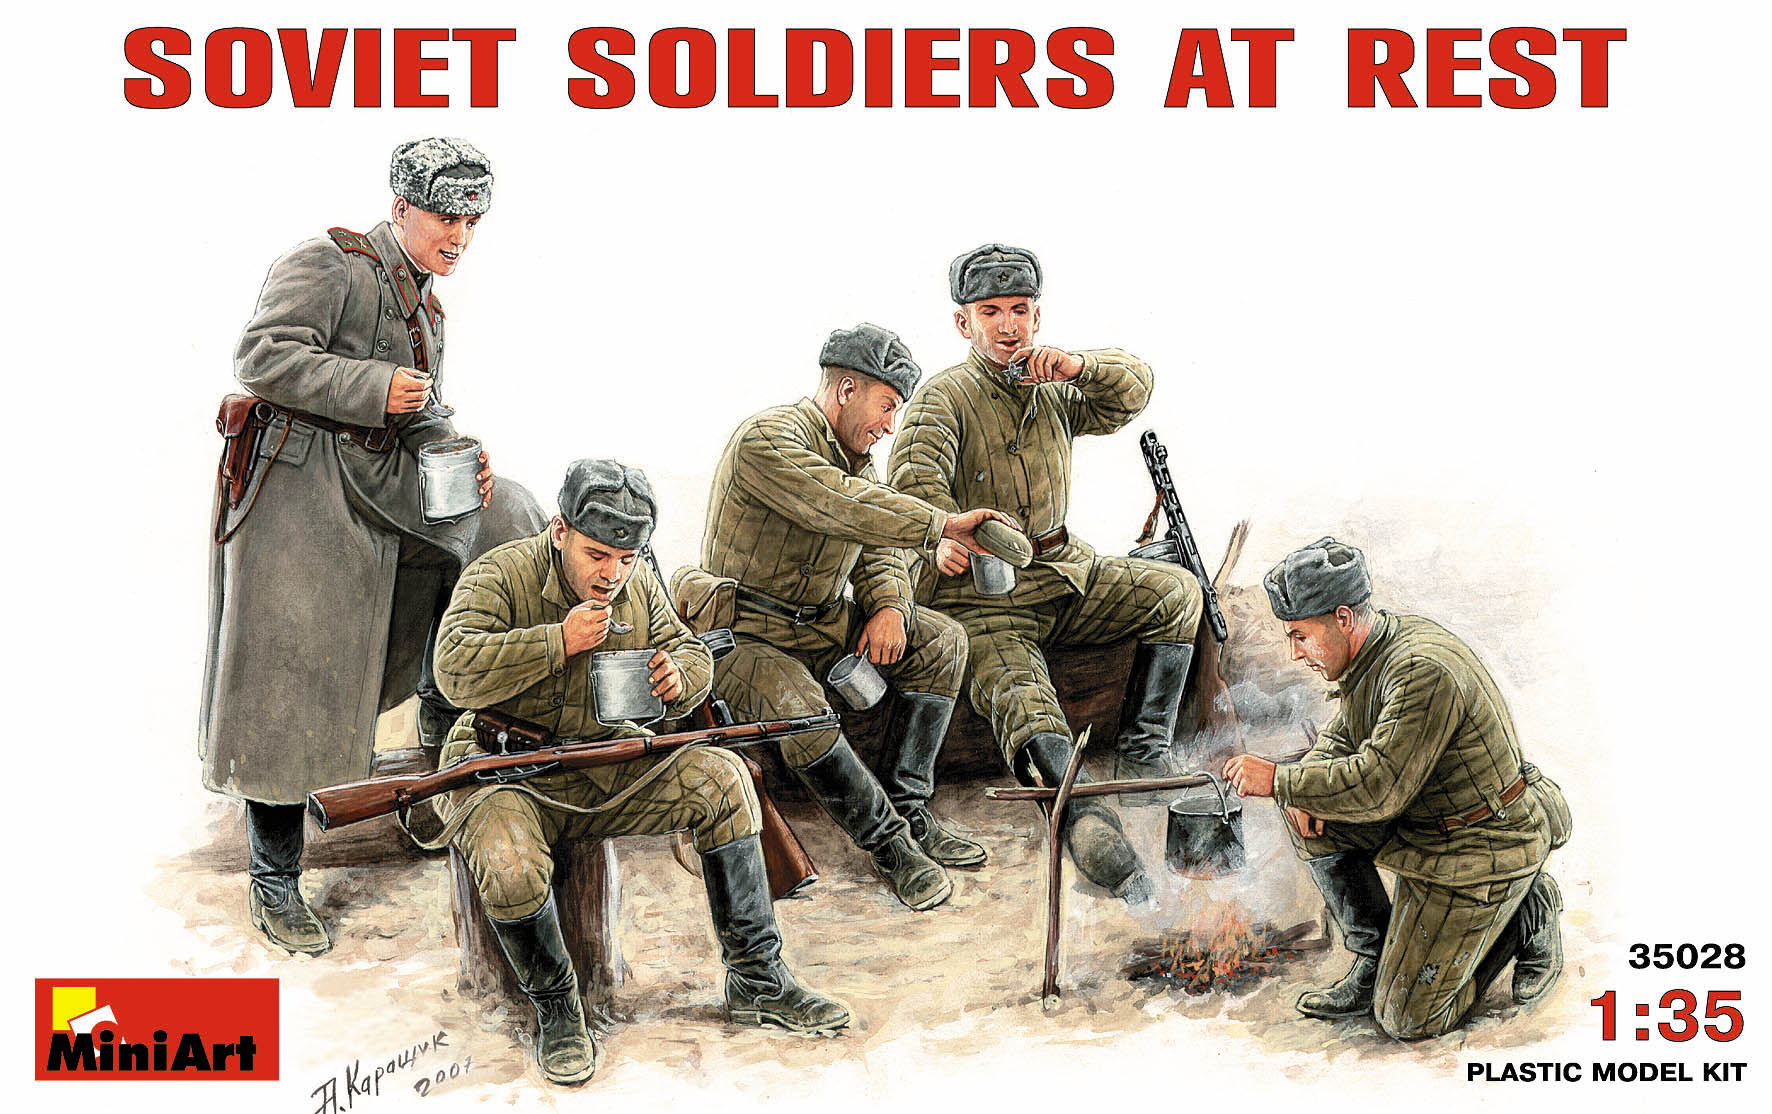 35028 SOVIET SOLDIERS AT REST